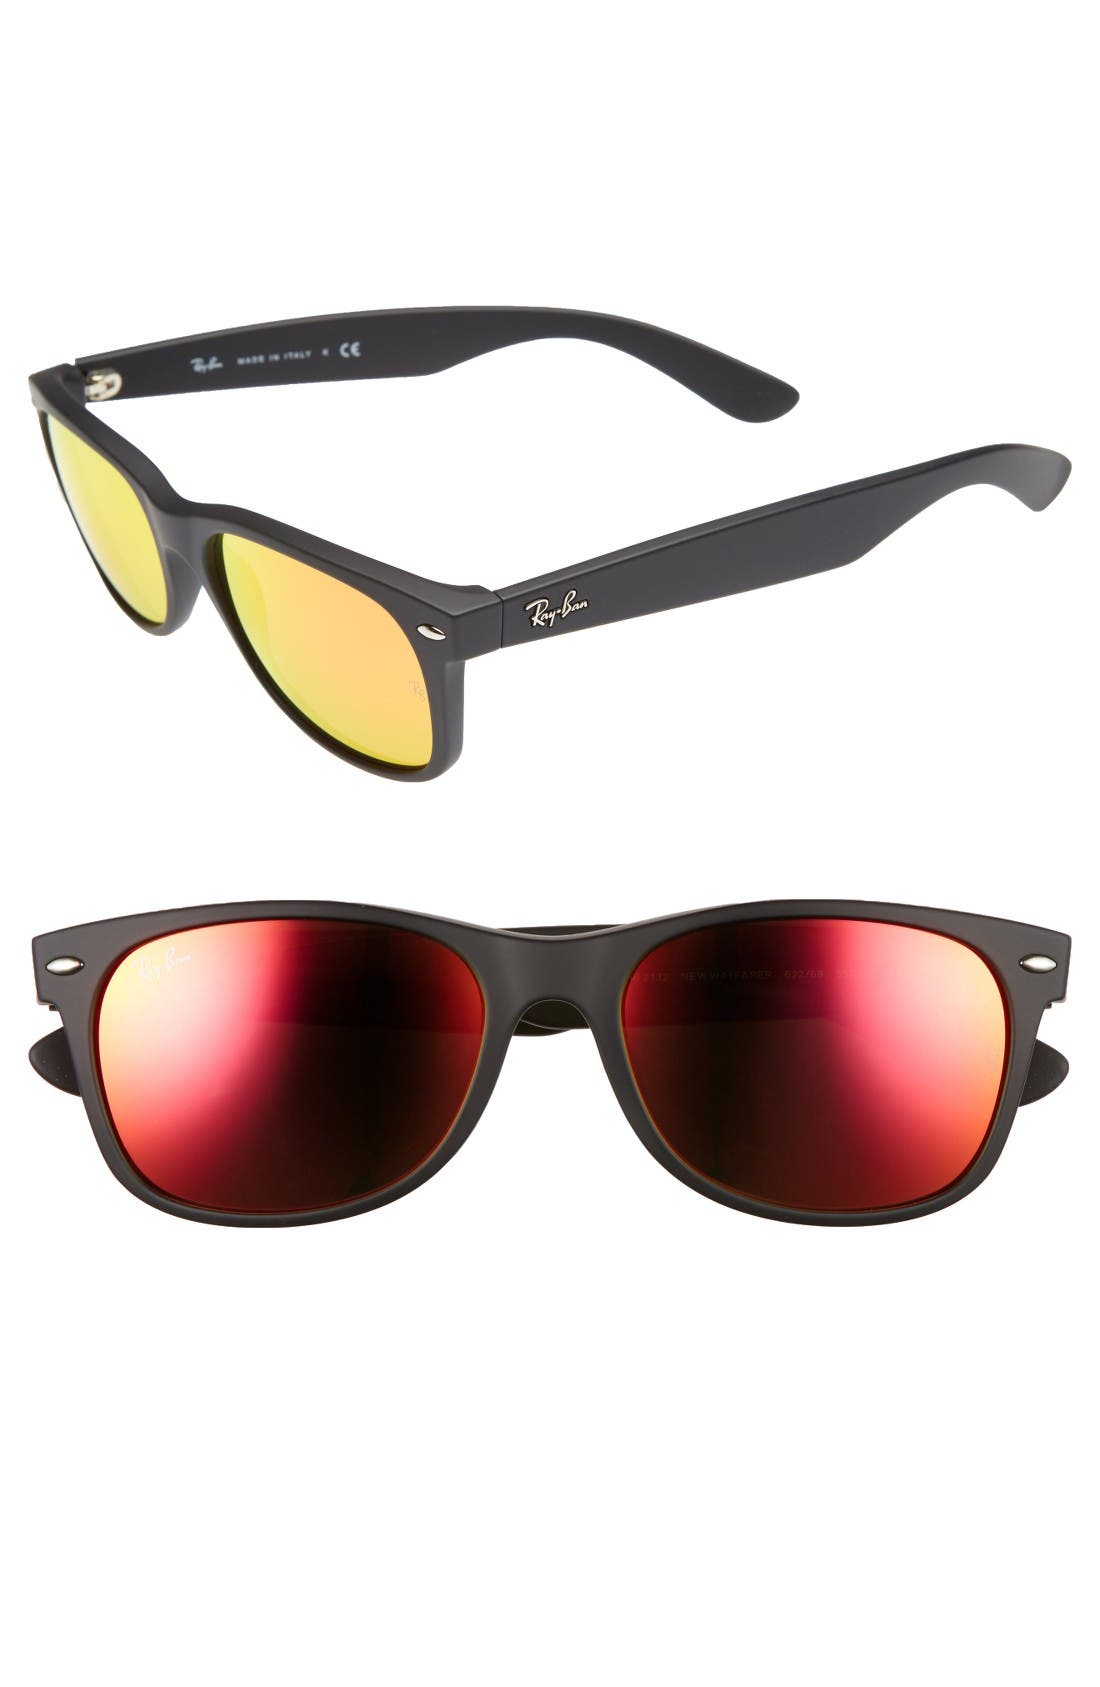 2132 55mm Sunglasses,                             Main thumbnail 1, color,                             Black/ Brown Mirror Red